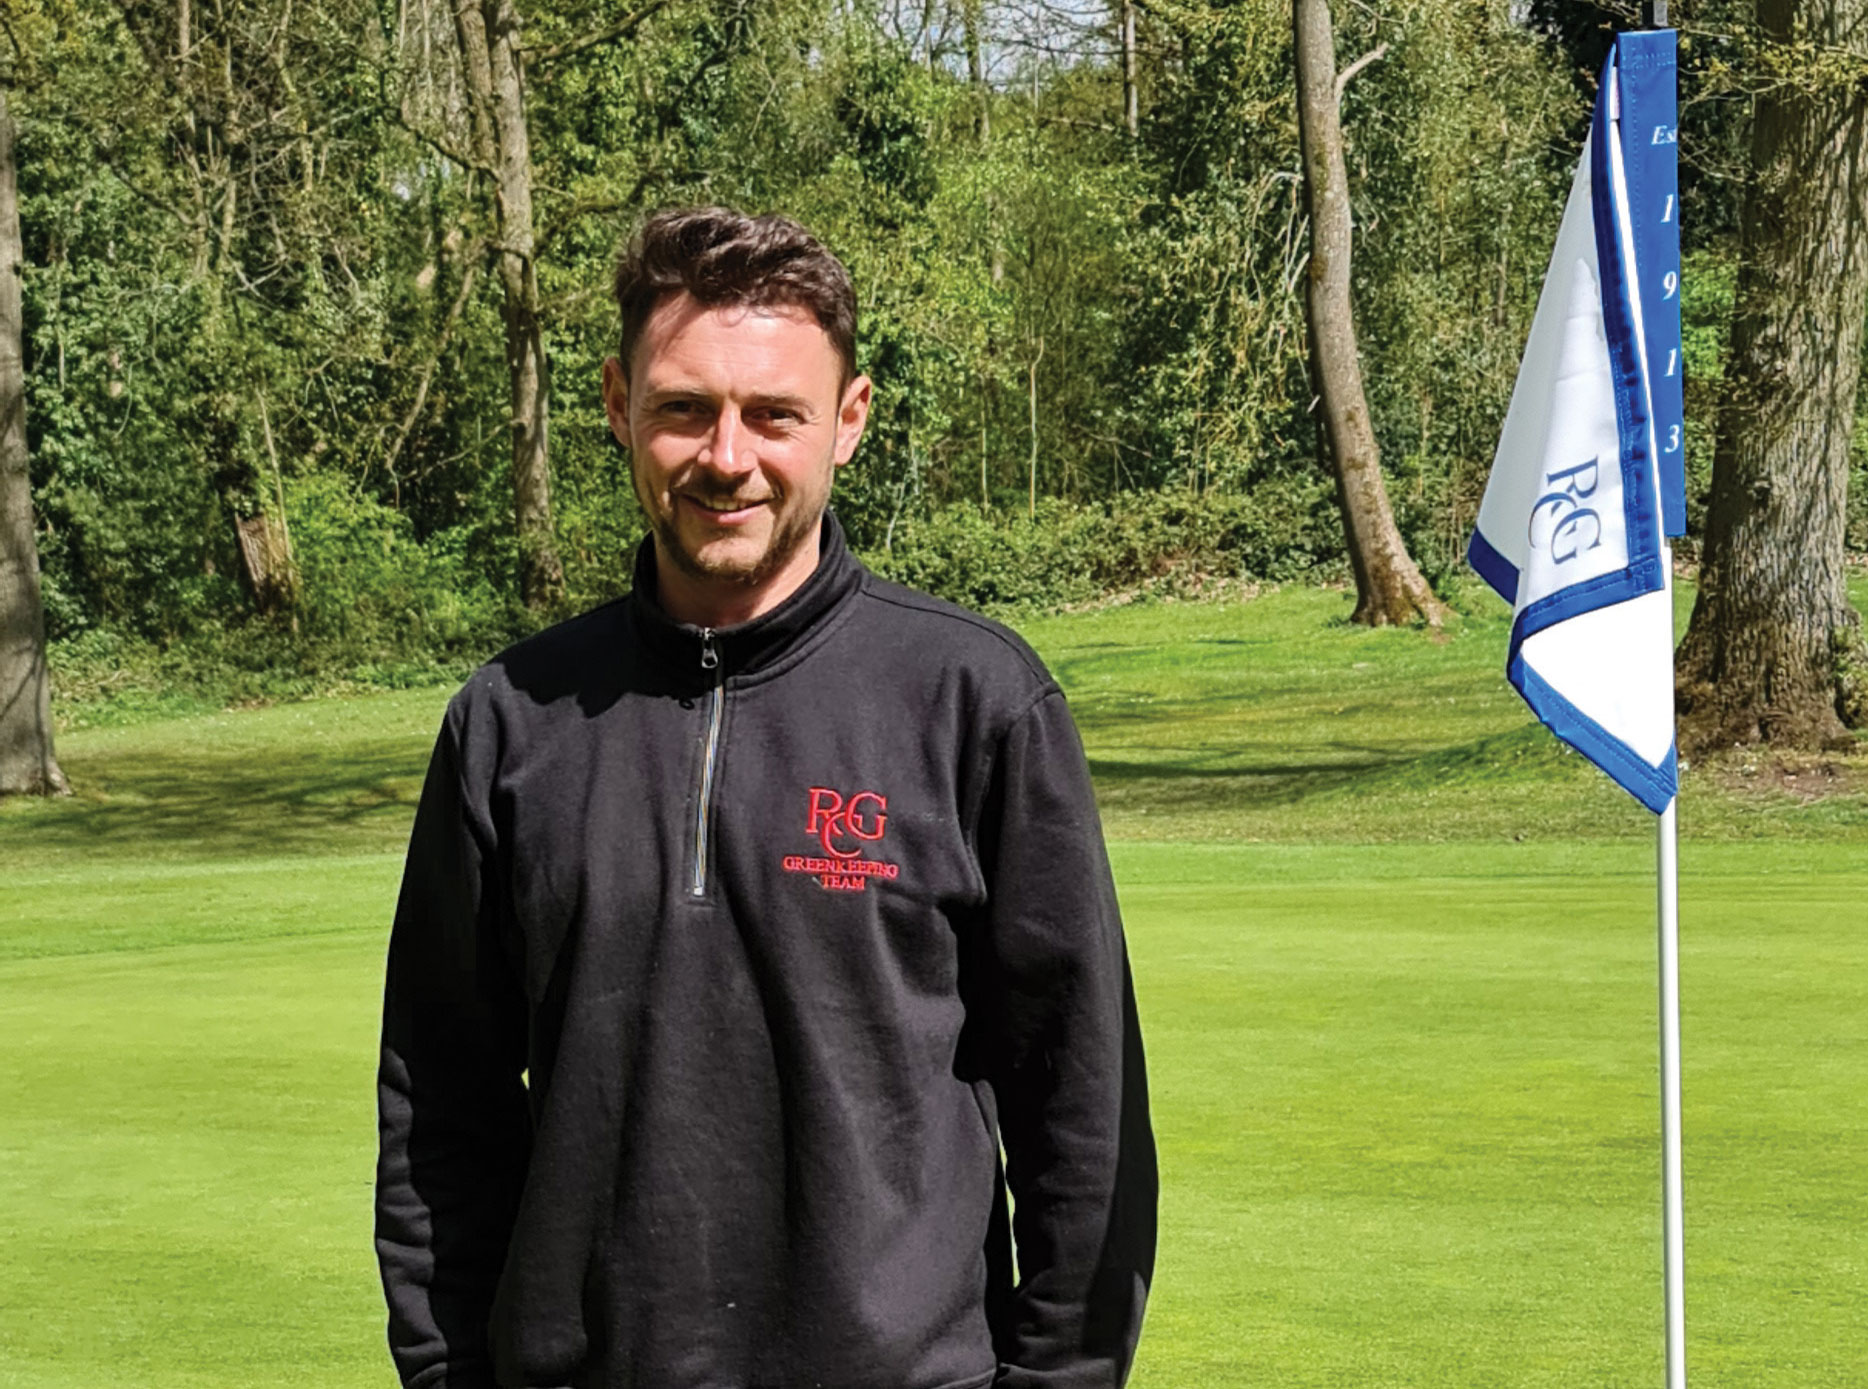 Homebase to feeling at home at Redditch Golf Club Background